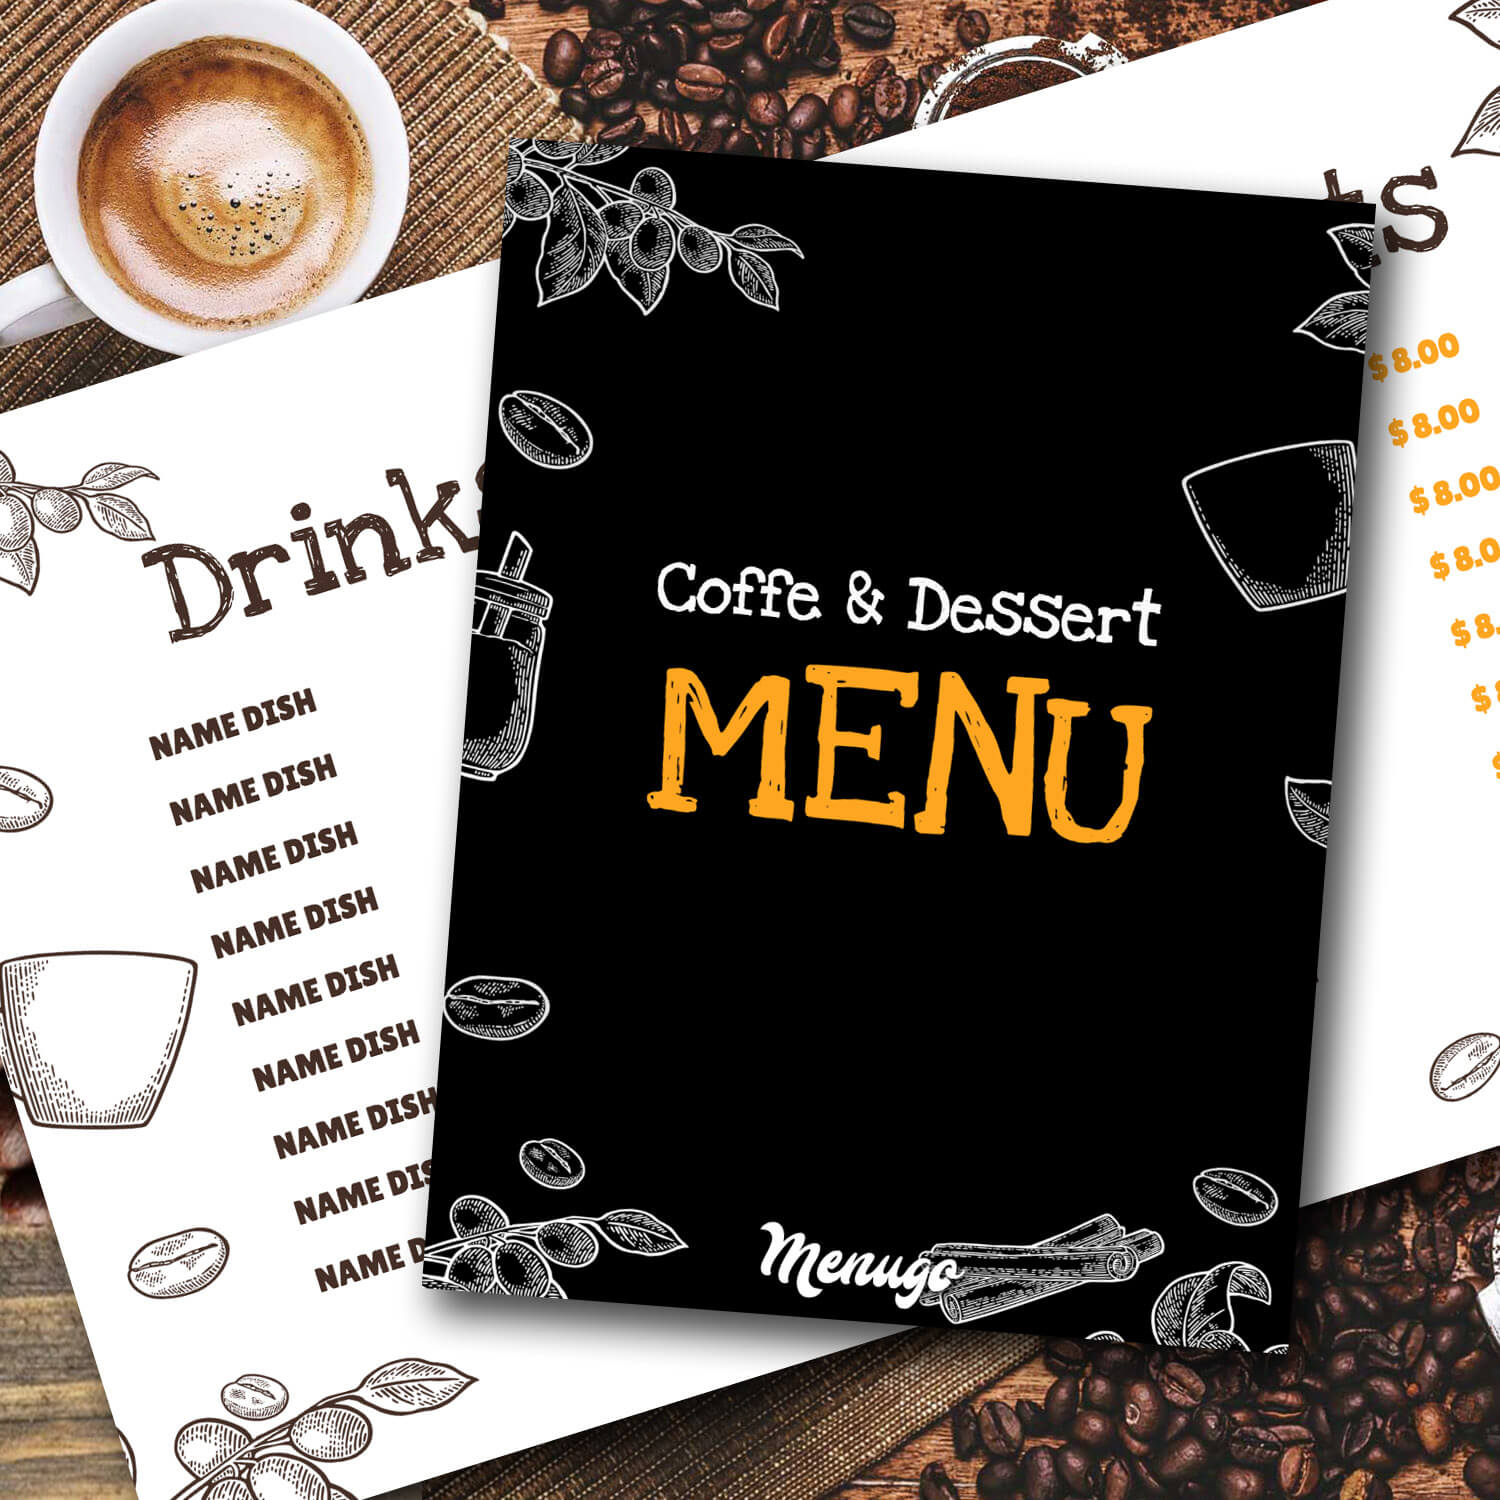 Coffee&Dessert Menu Menu Design